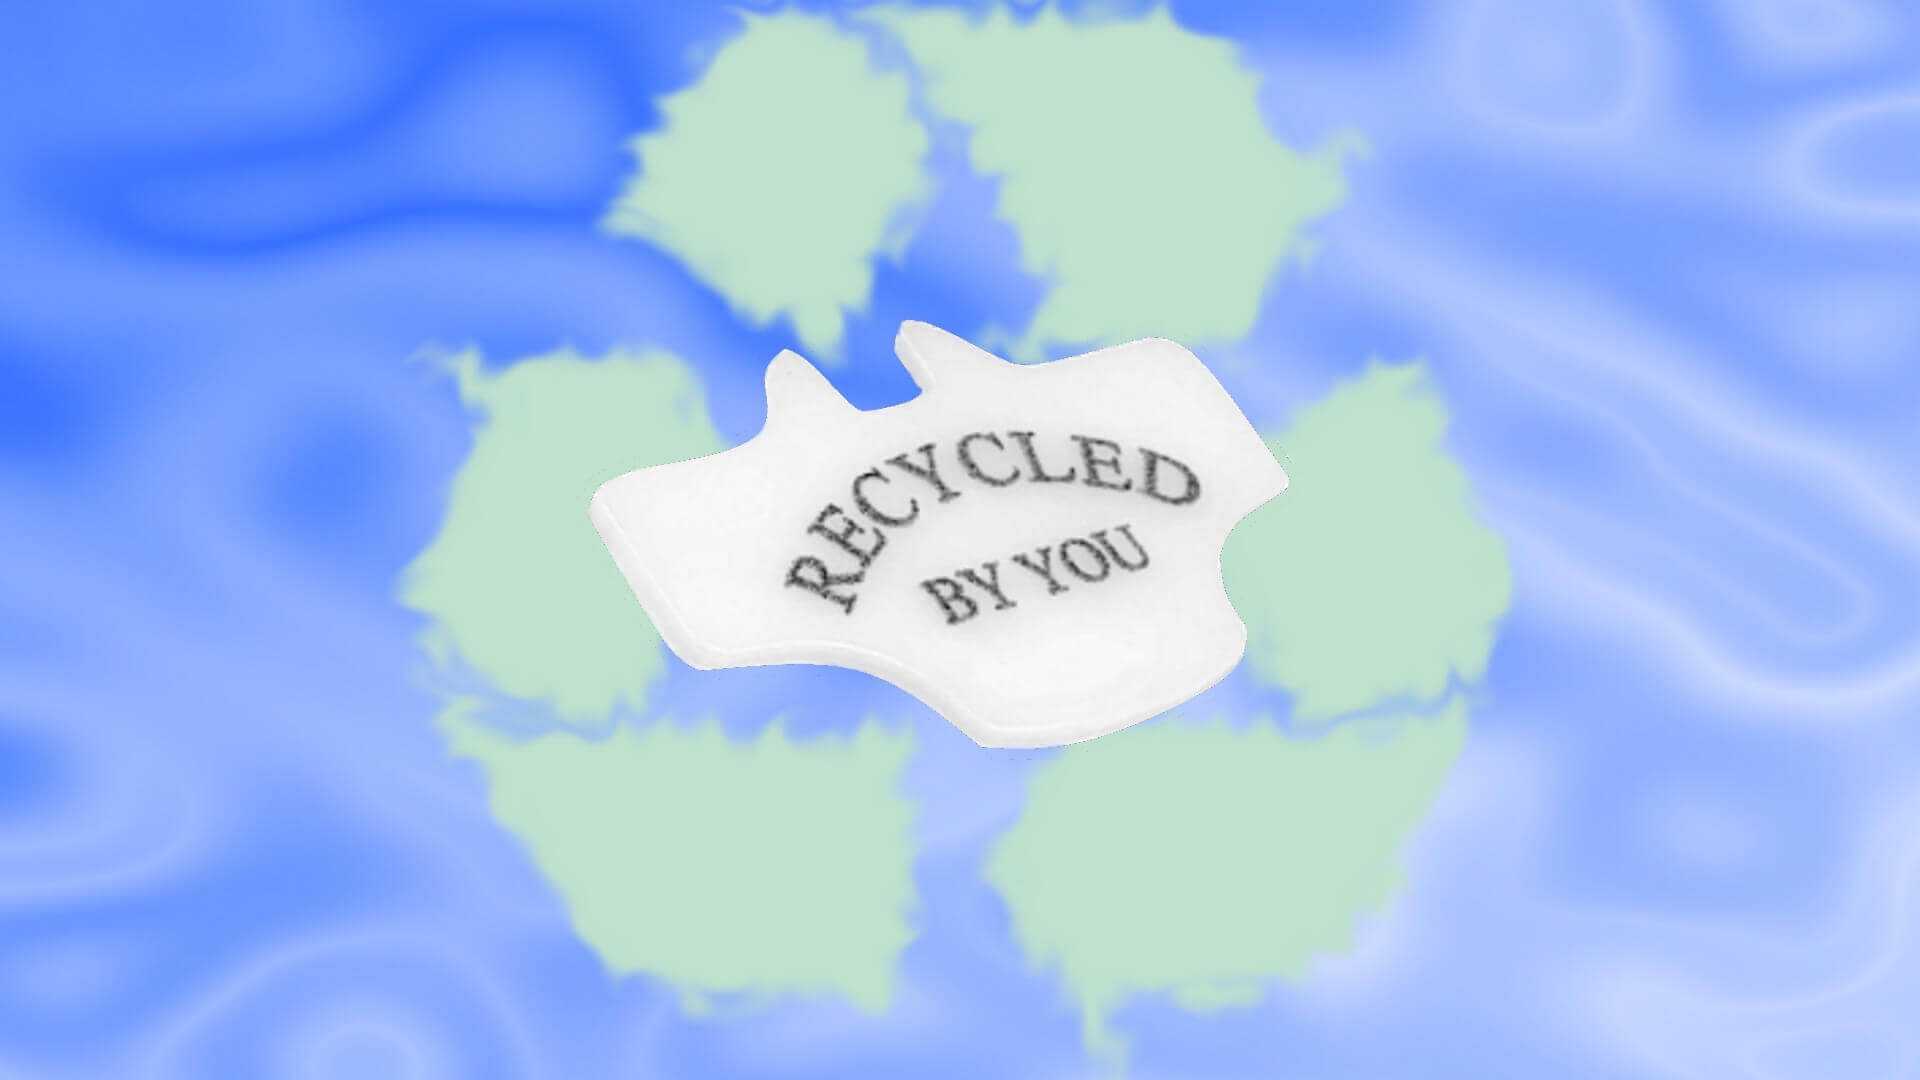 Recycled by you security seal EN